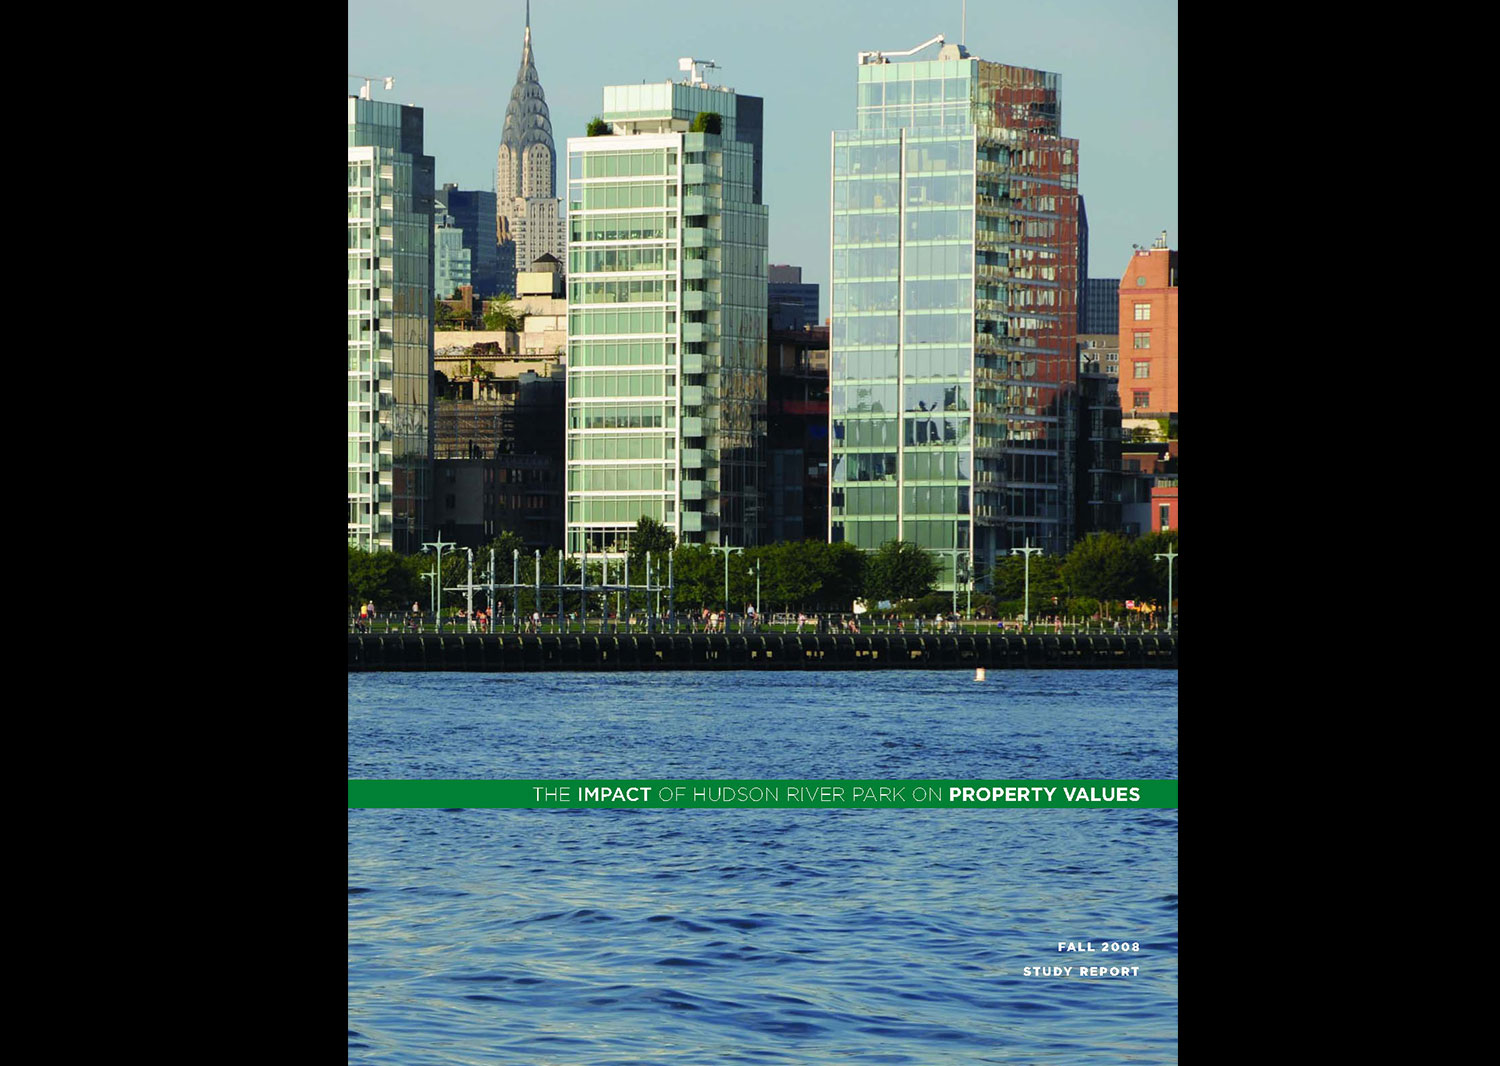 The Impact of Hudson River Park on Property Values 2008